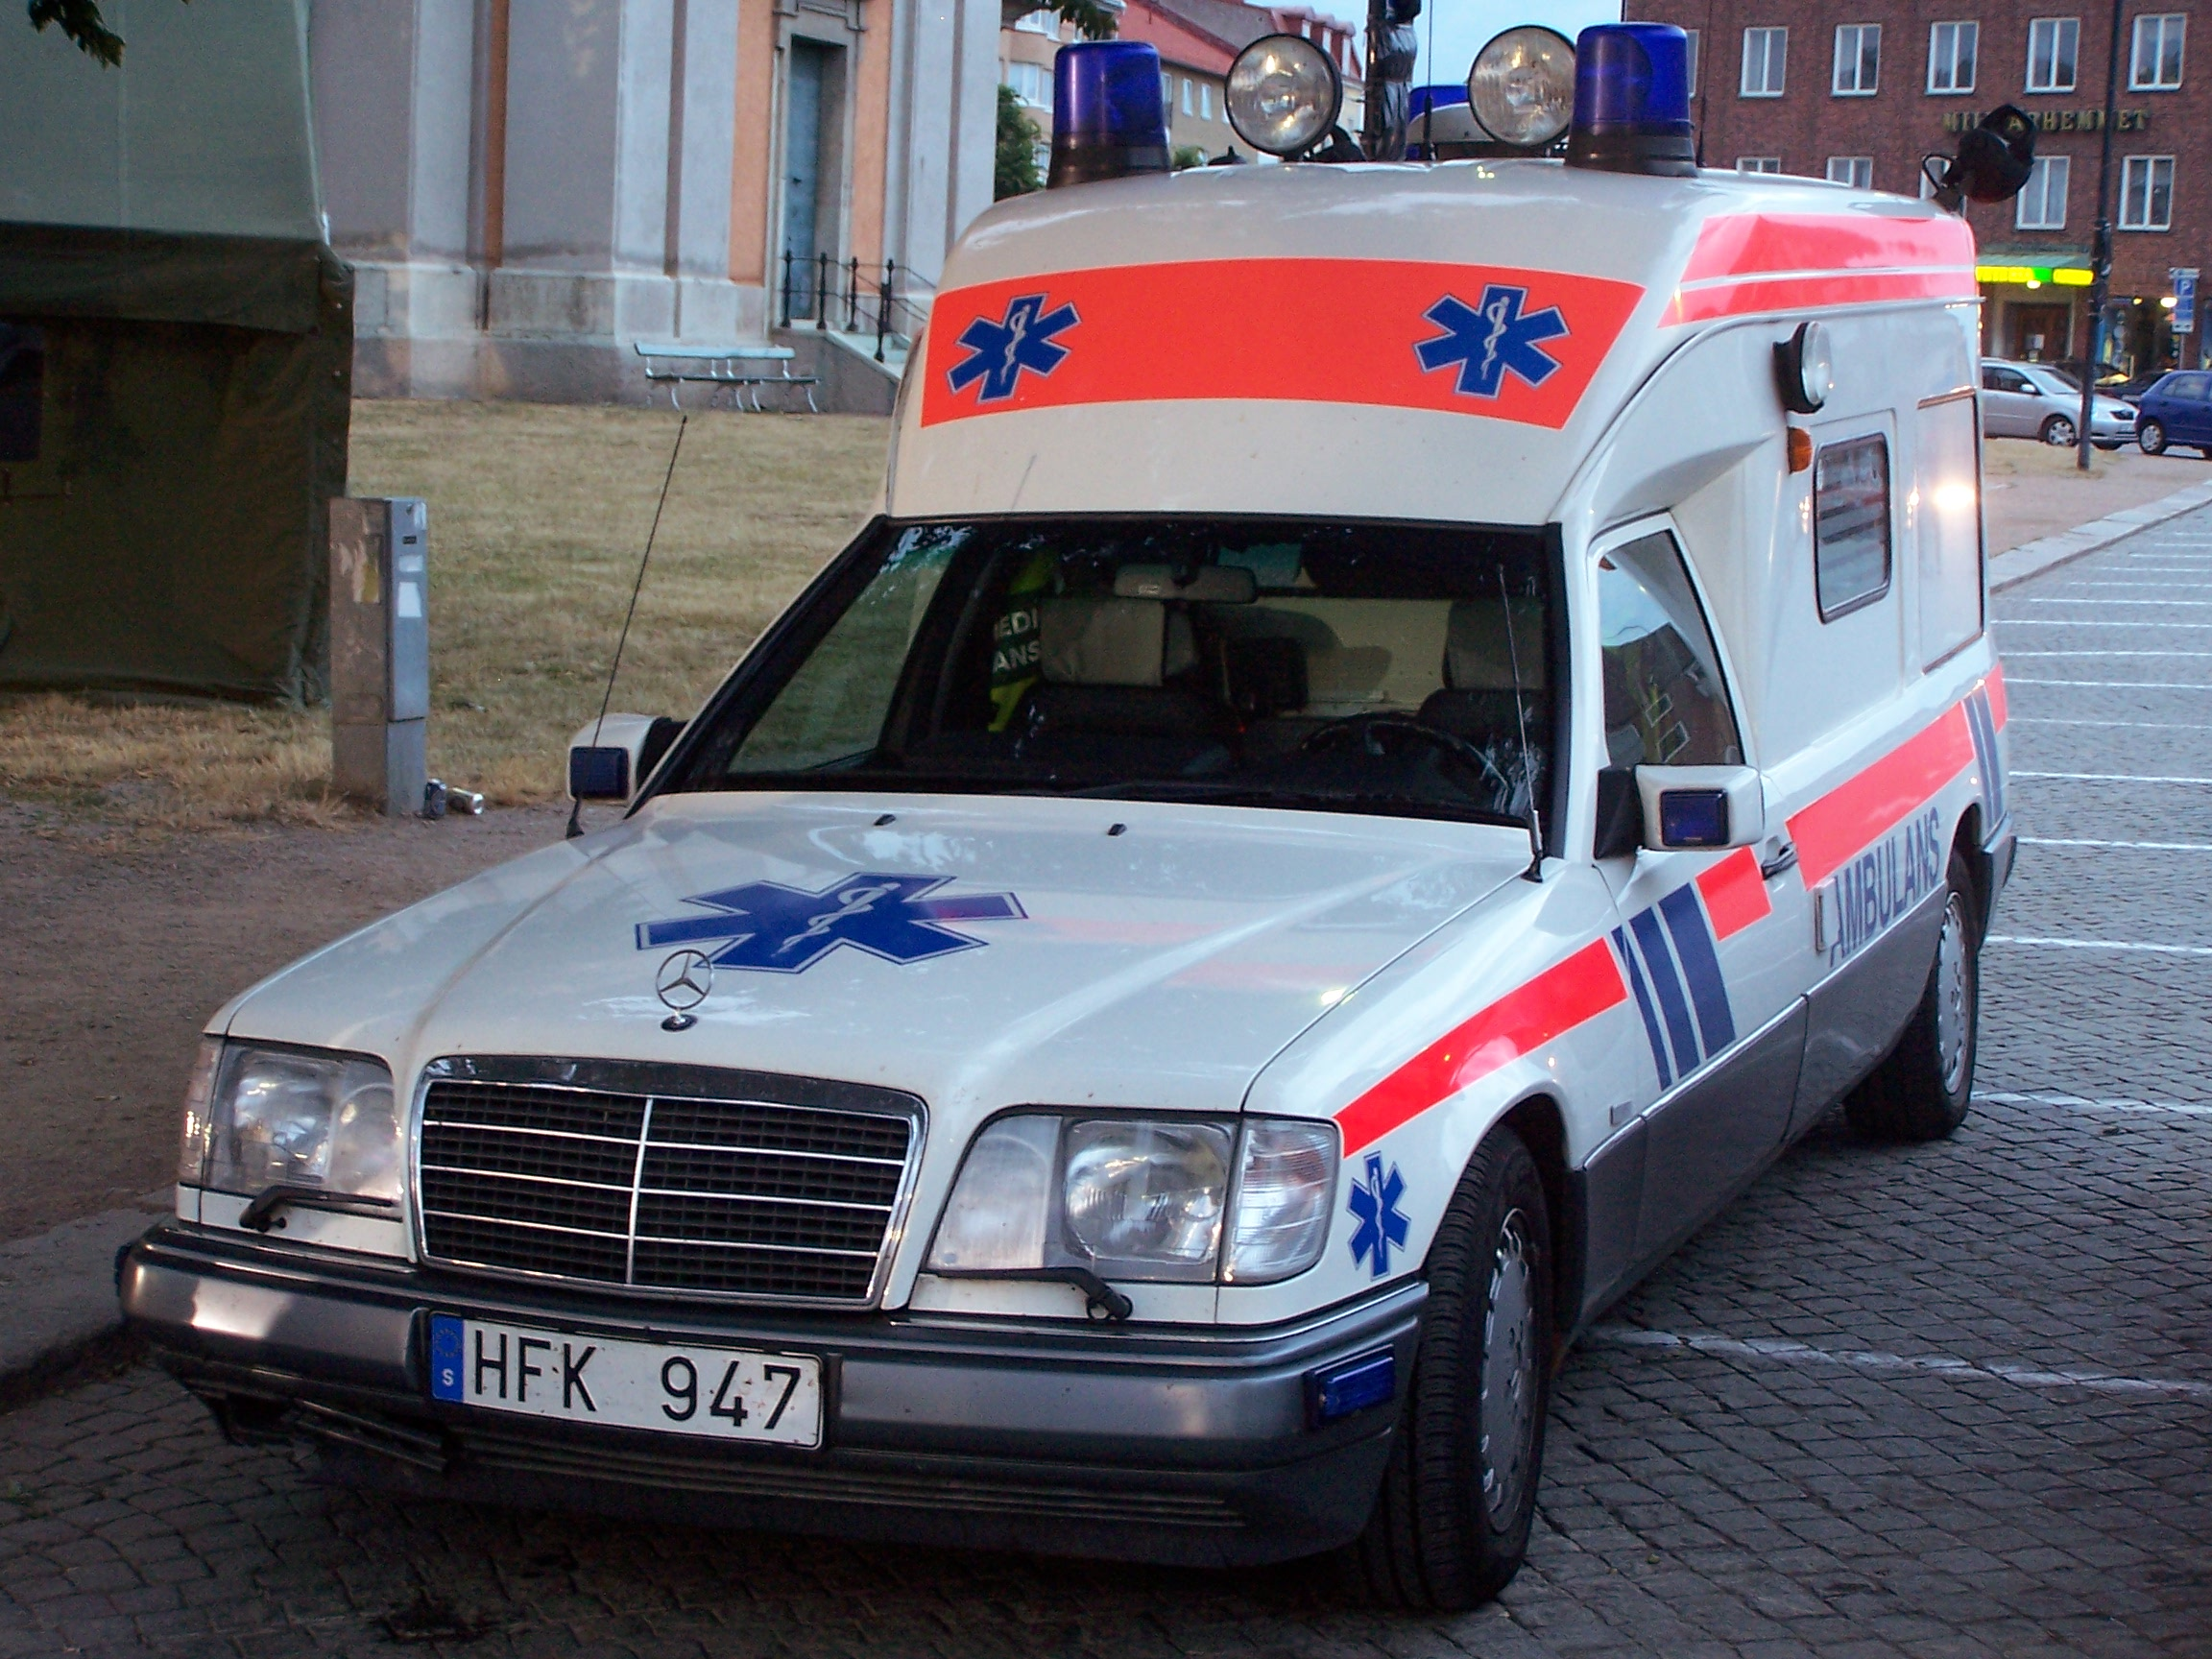 Einsatzfzg moreover Watch moreover Photo full furthermore Mercedes Benz W176 A200d Amg Line further File Swedish ambulance in Blekinge. on benz w124